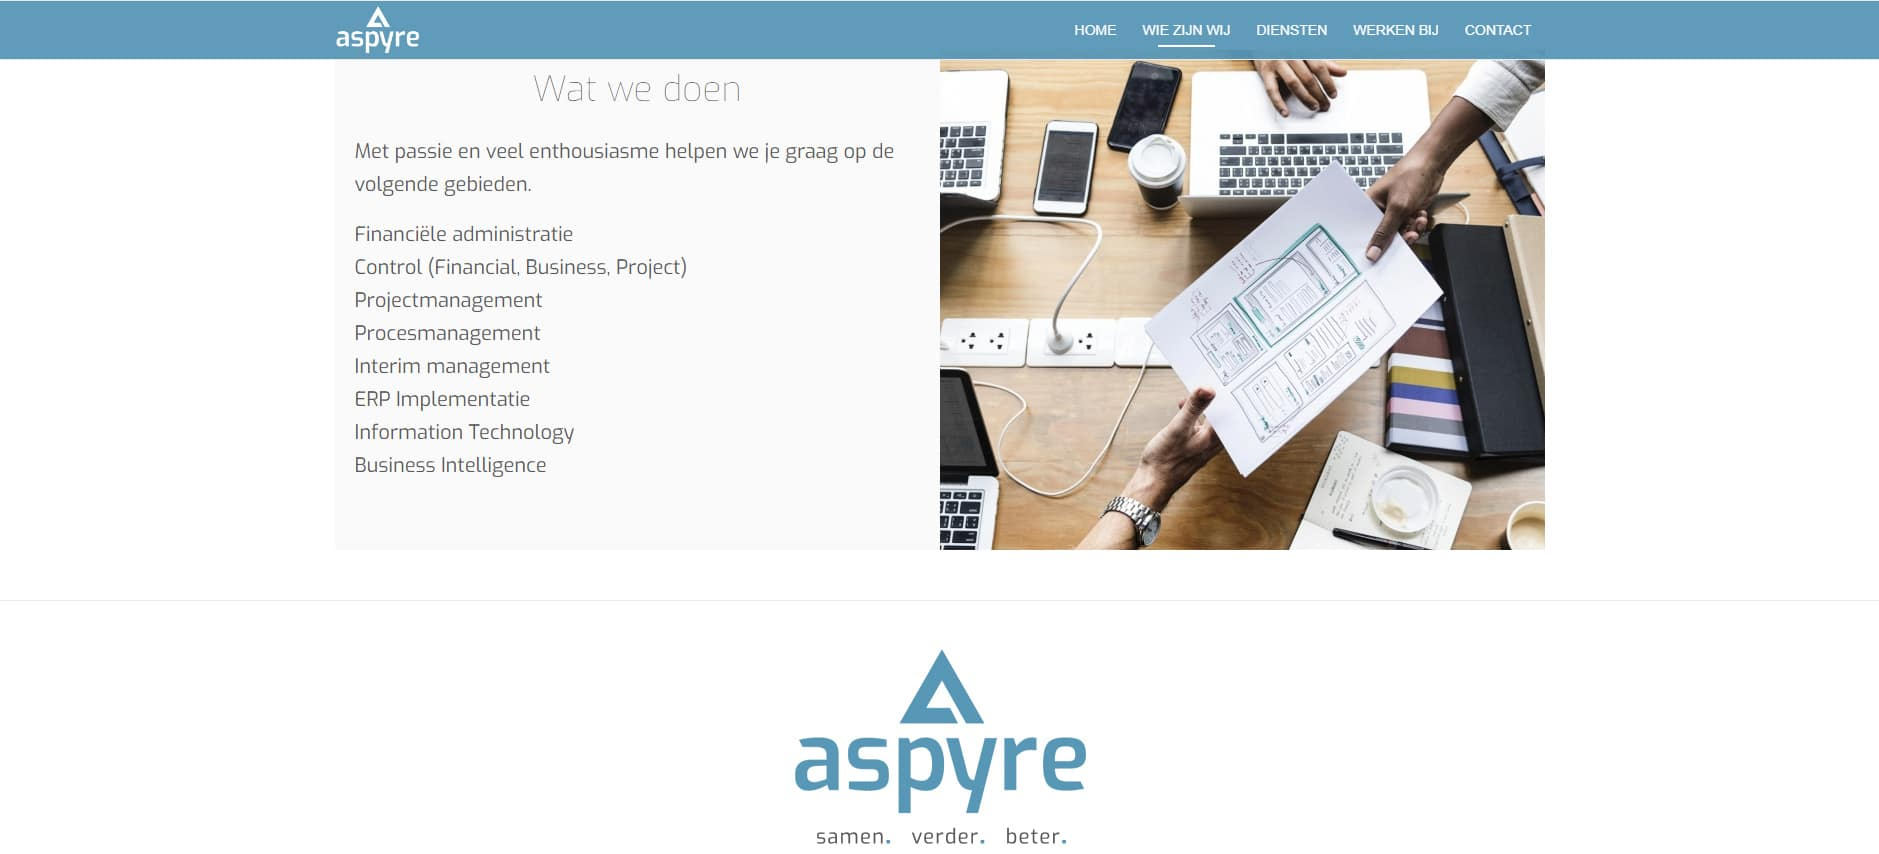 WordPress - Aspyre - aspyre